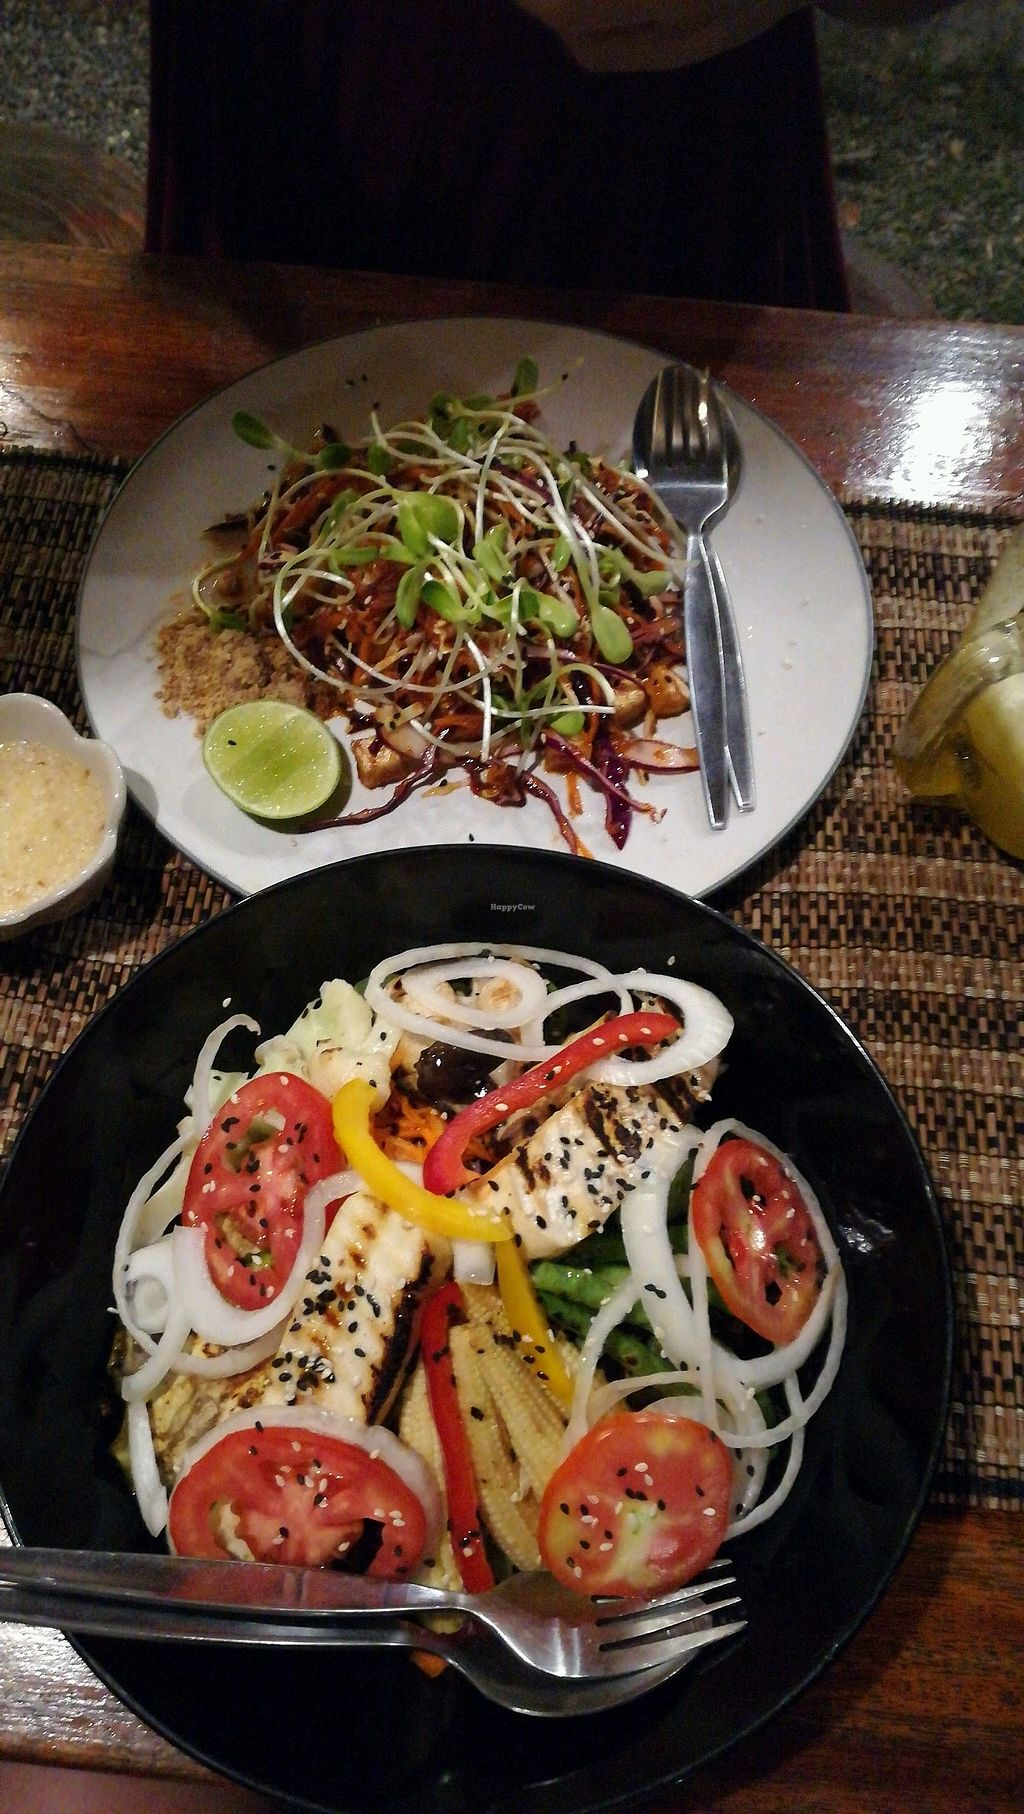 """Photo of Happy Veggie  by <a href=""""/members/profile/Marleen410"""">Marleen410</a> <br/>raw pad thai and a salad with tofu  <br/> March 2, 2018  - <a href='/contact/abuse/image/83999/365862'>Report</a>"""